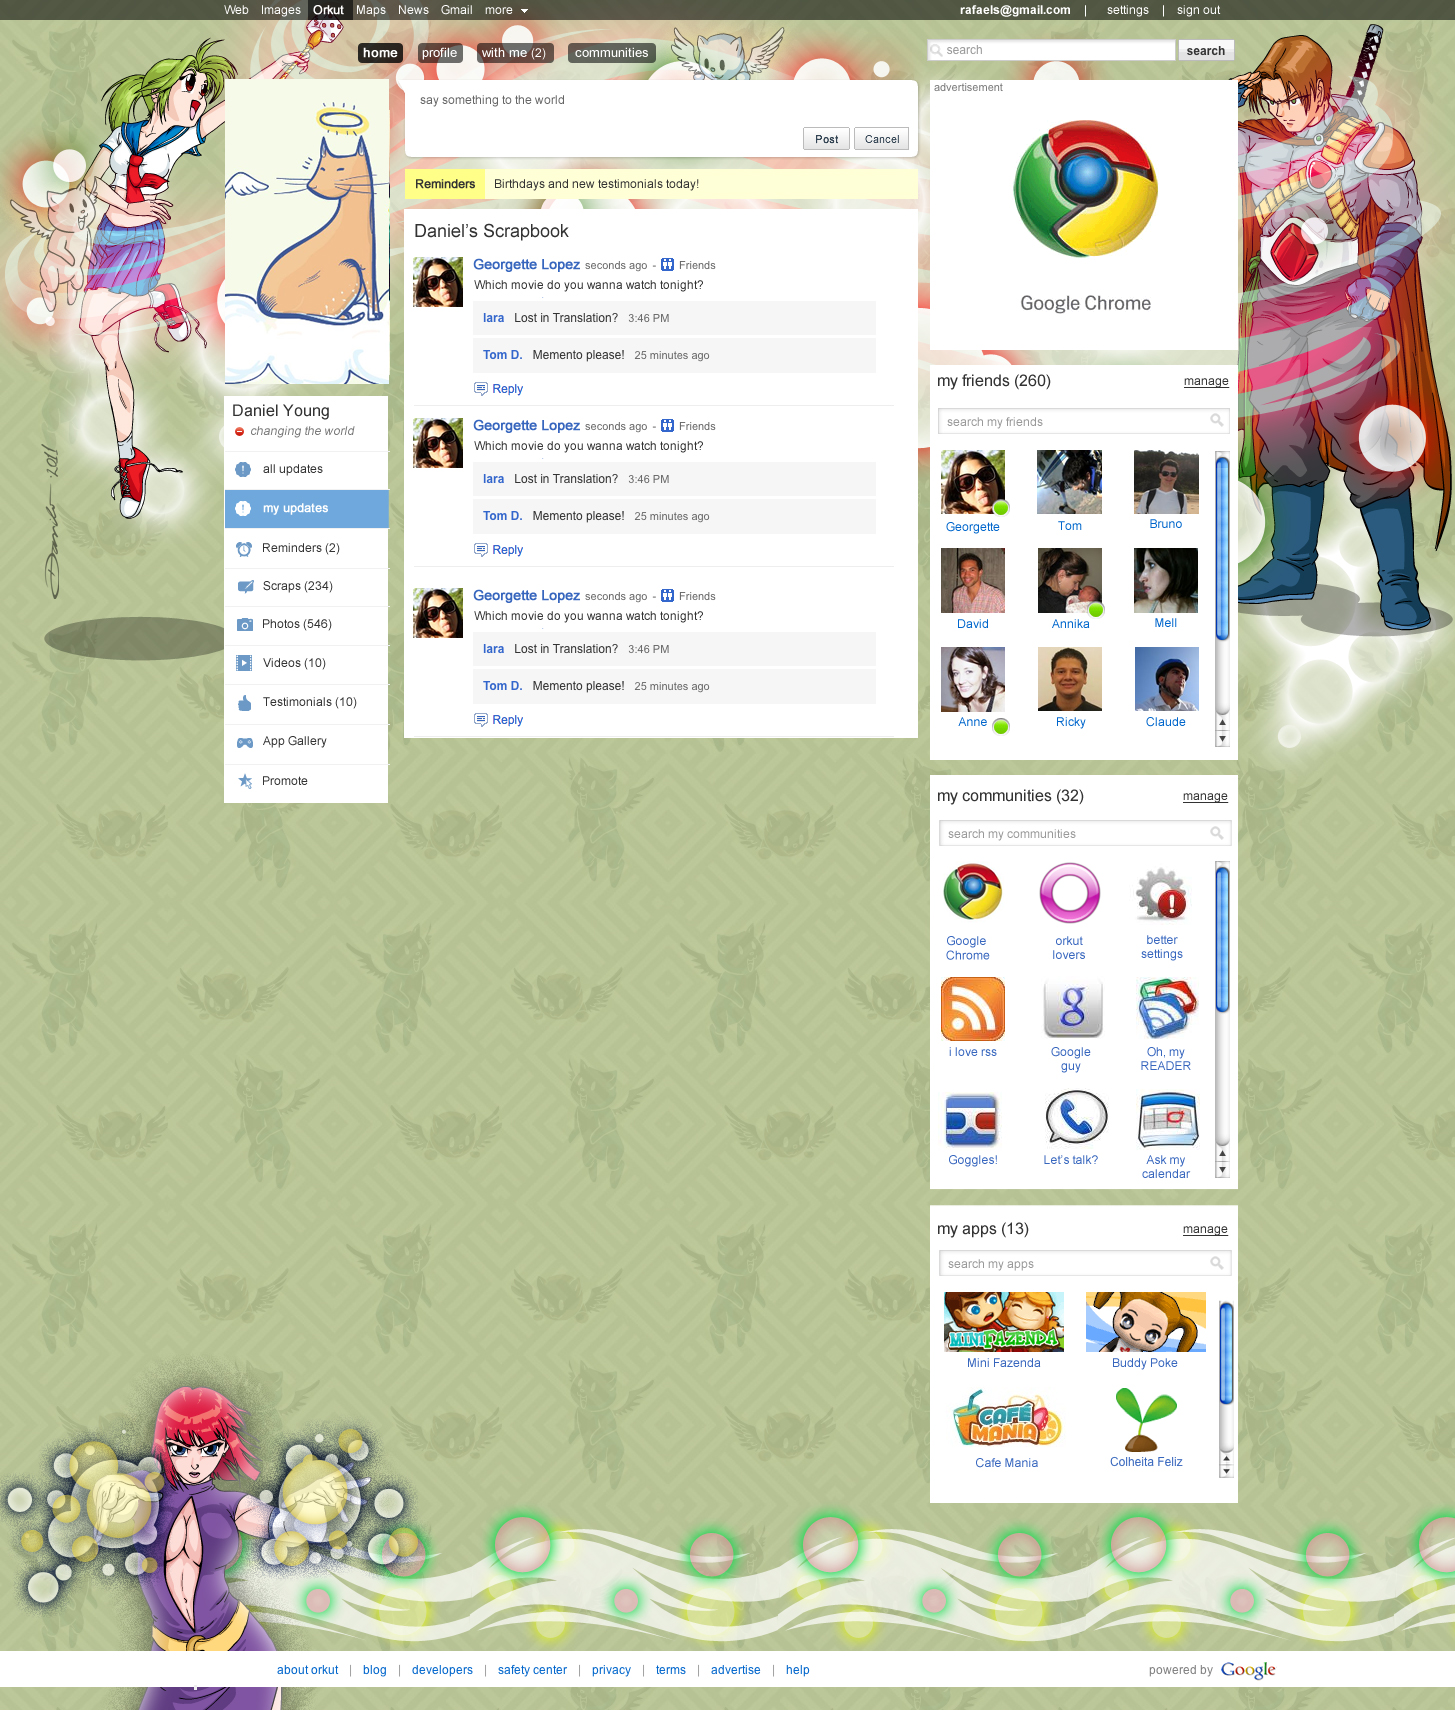 Tema do orkut - Anime - by Danilo Aroeira